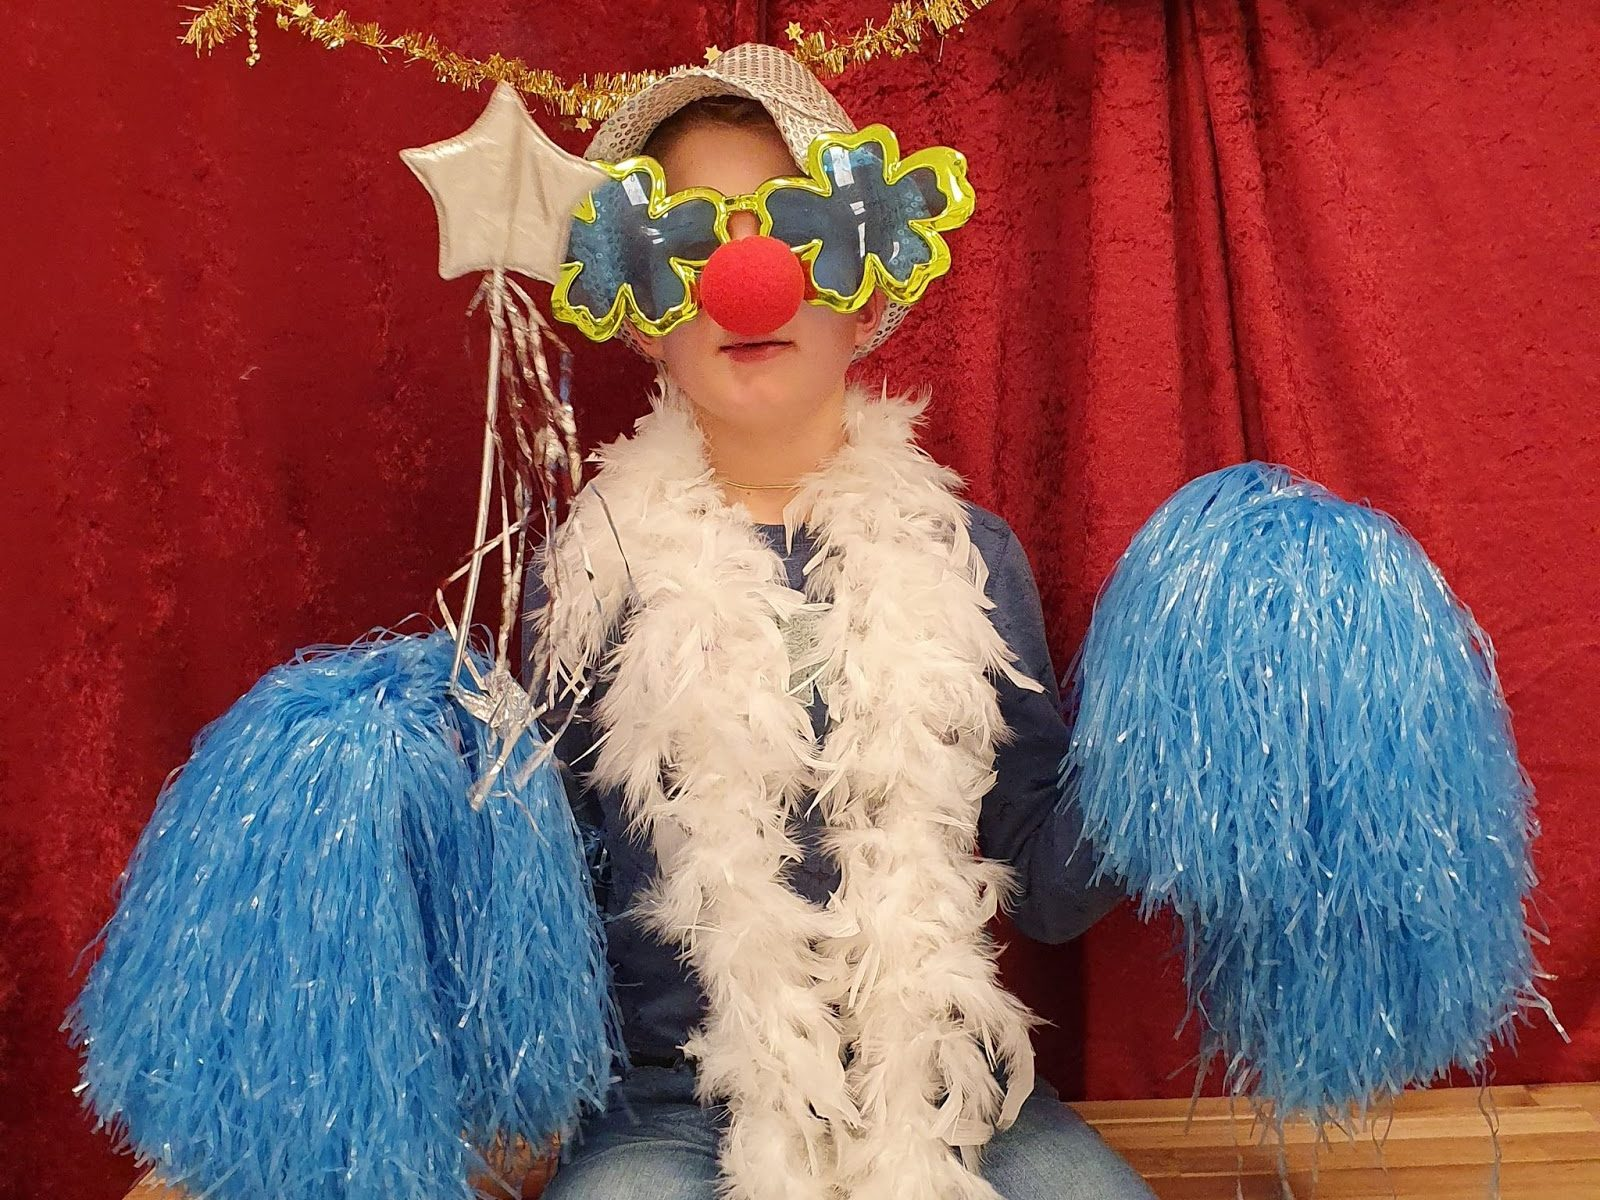 A child dressed up for a photo during the winter wonderland party that Visma Raet initiated for students, teachers, and parents at a school for children with Down syndrome